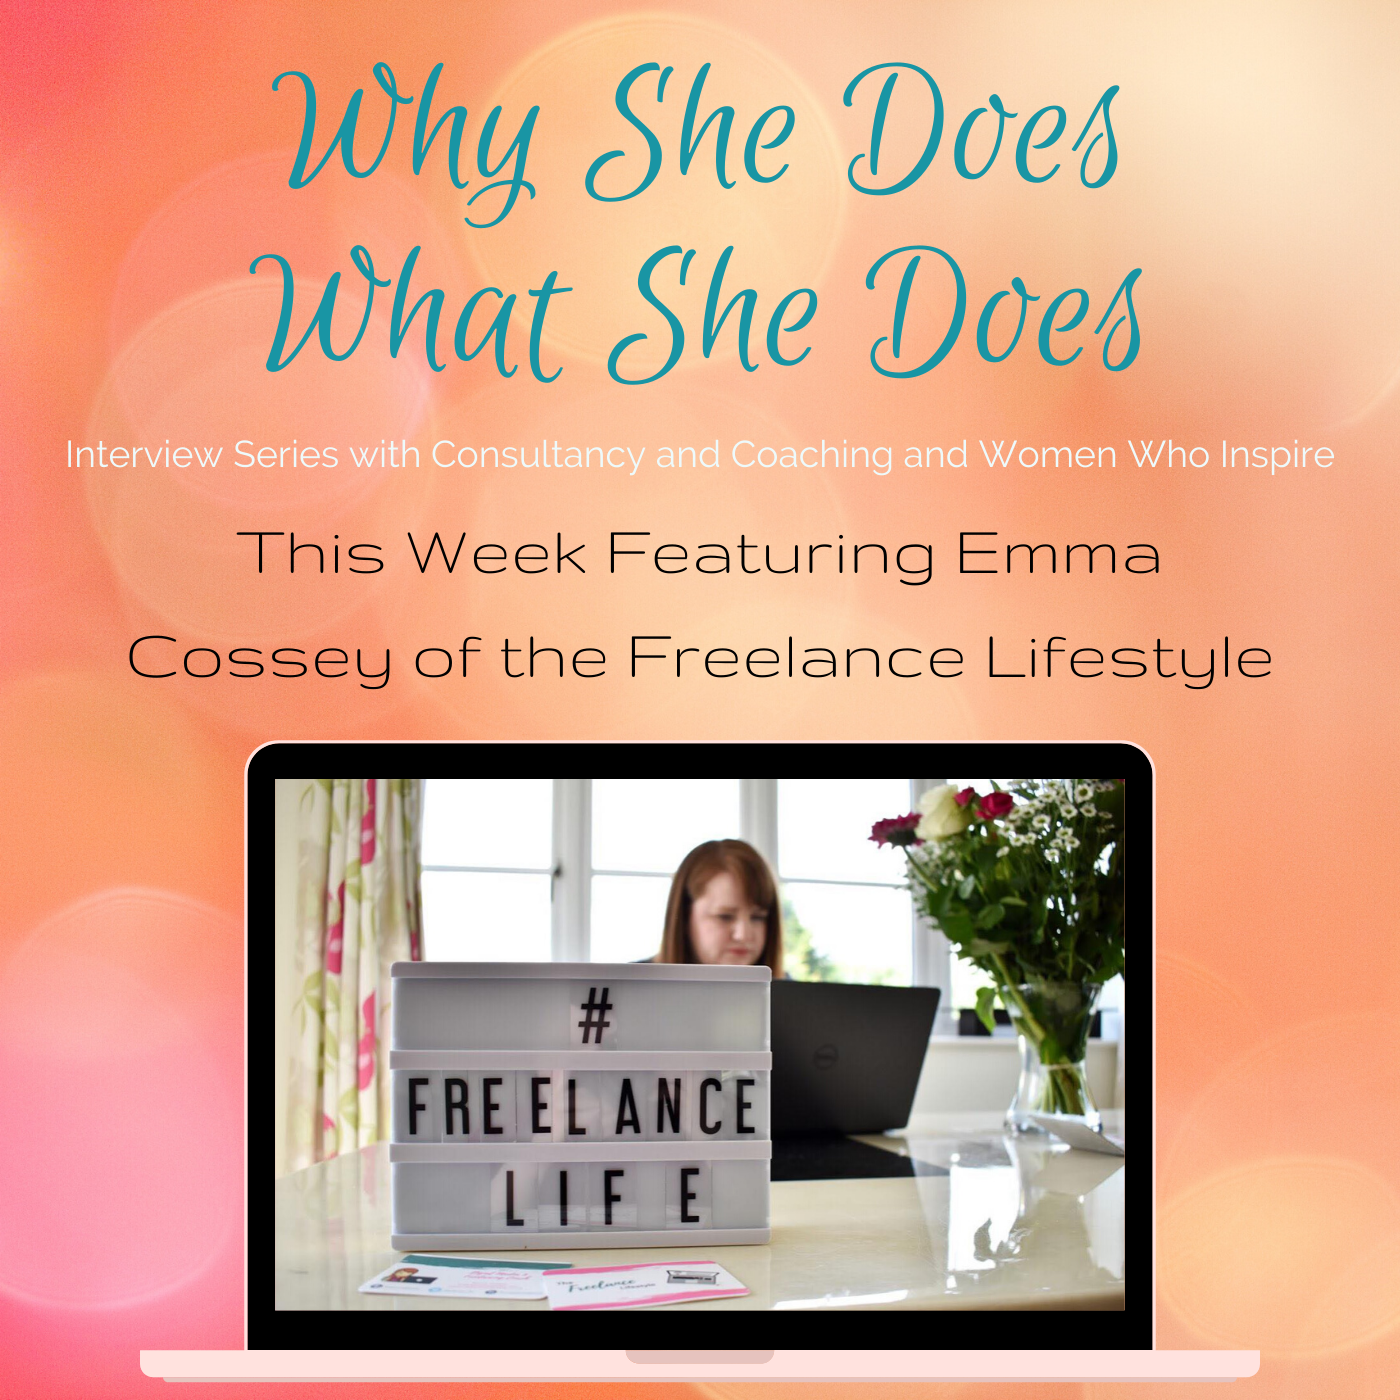 Why She Does What She Does Featuring Emma Cossey, Freelance Lifestyle with Carol Evans, The Absolute Business Success Podcast Show